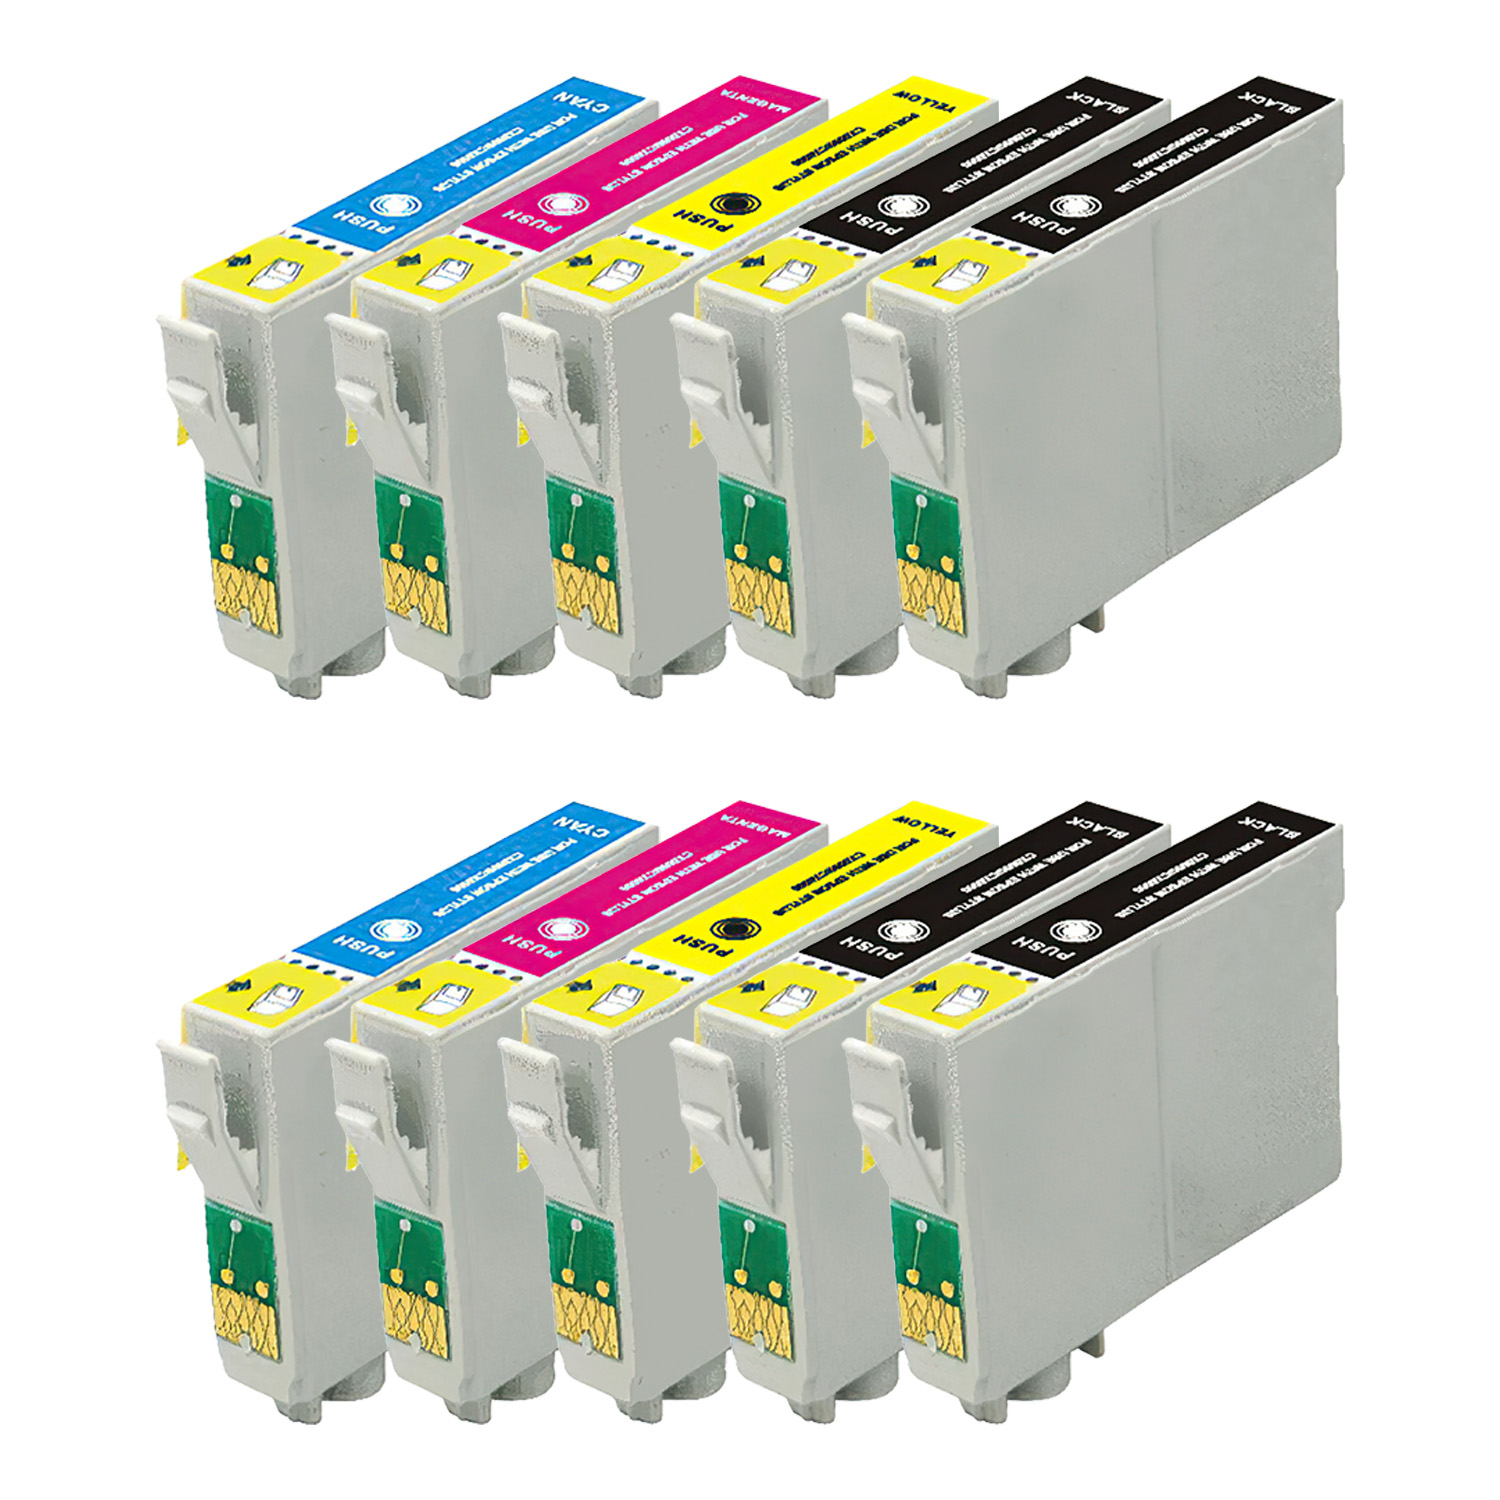 Remanufactured Epson 125 Inkjet High Capacity Pack - 10 Cartridges